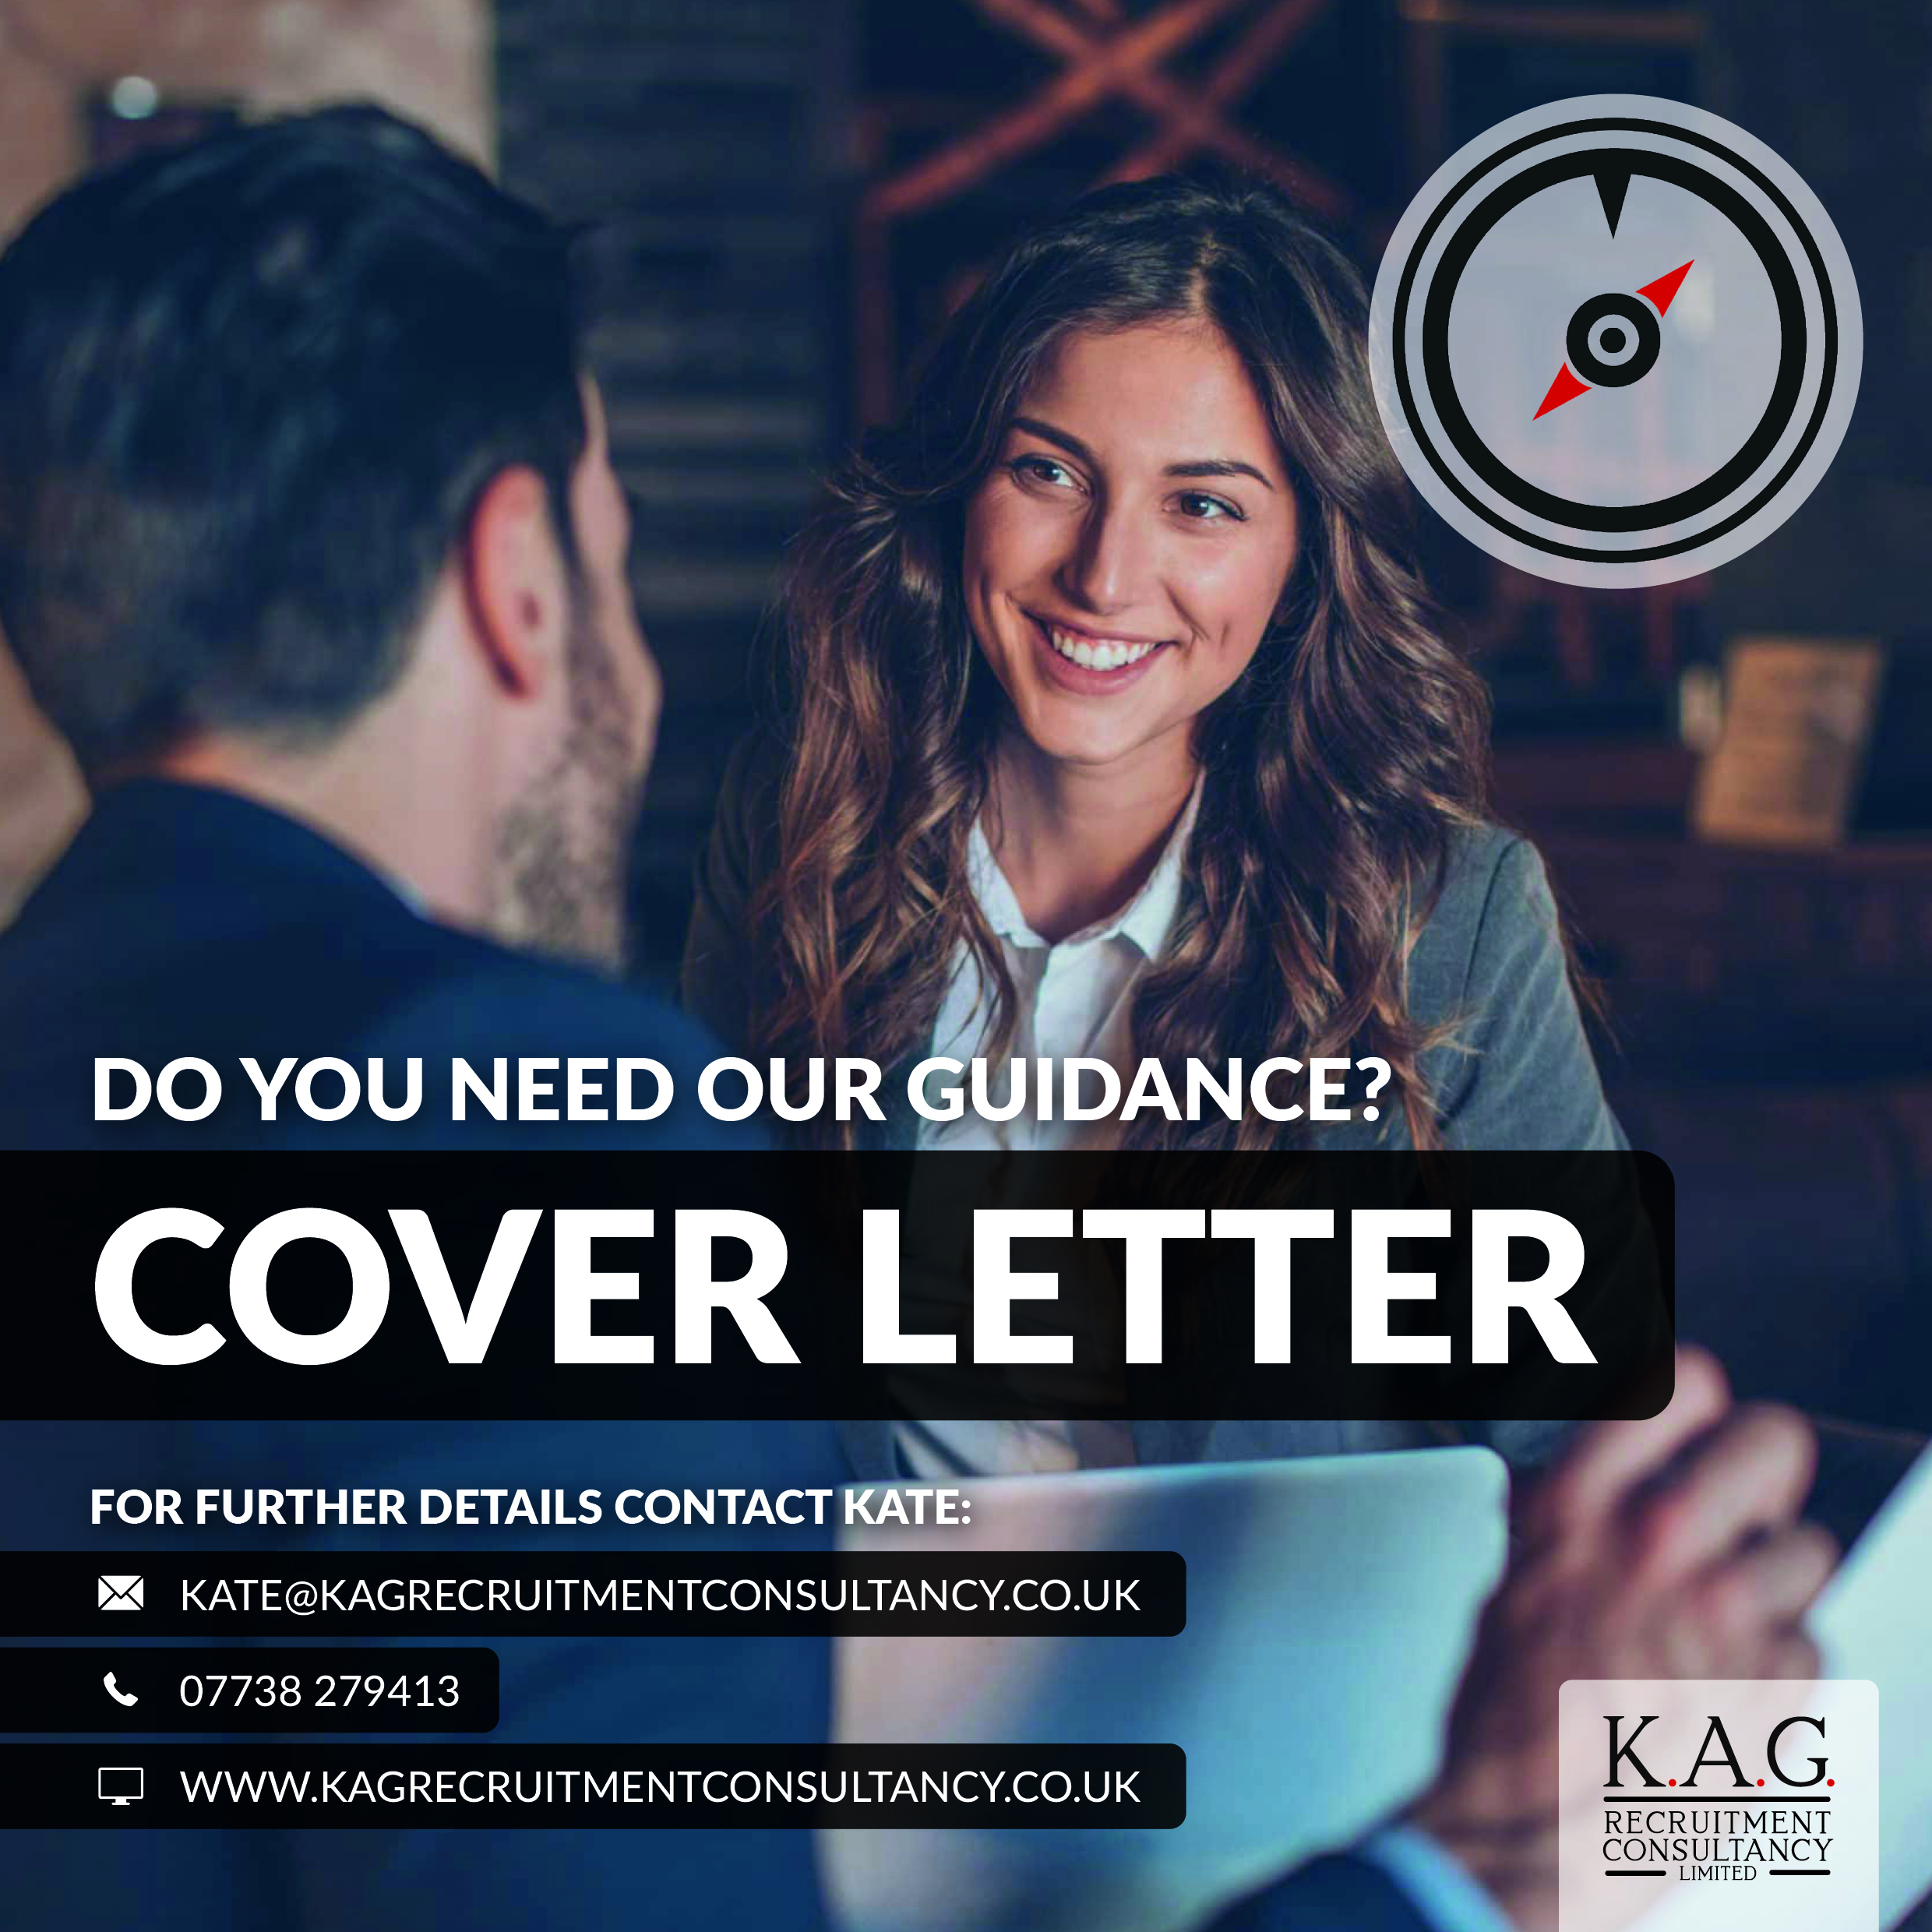 KAG Recruitment Consultancy cover letter